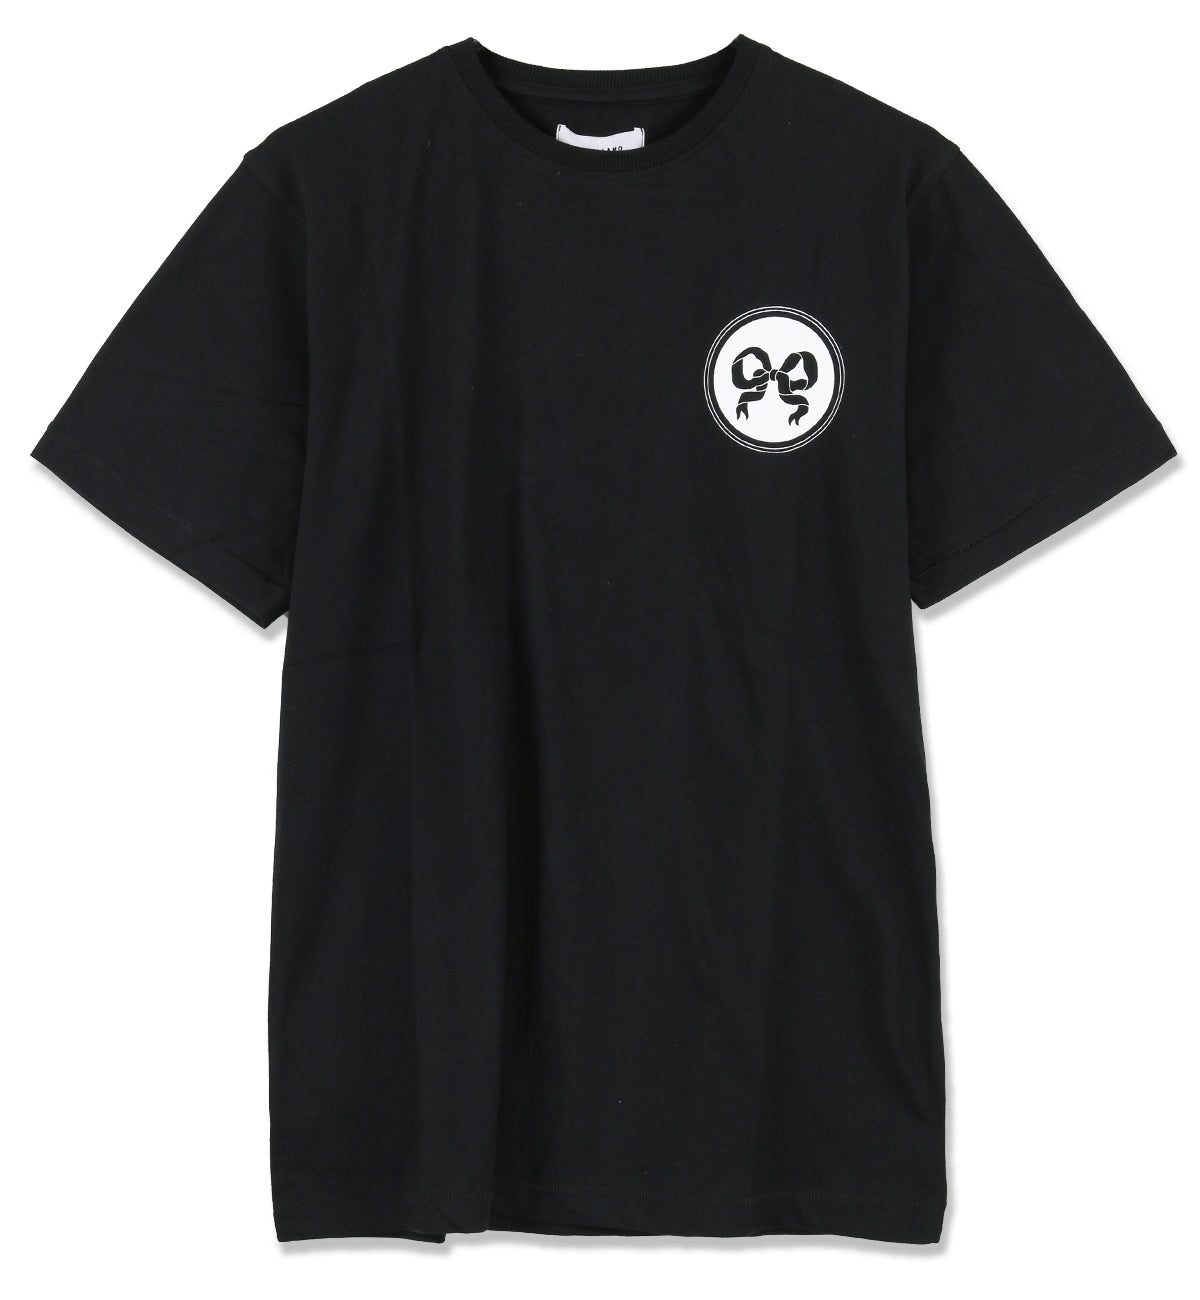 Soulland Nos Ribbon Tee